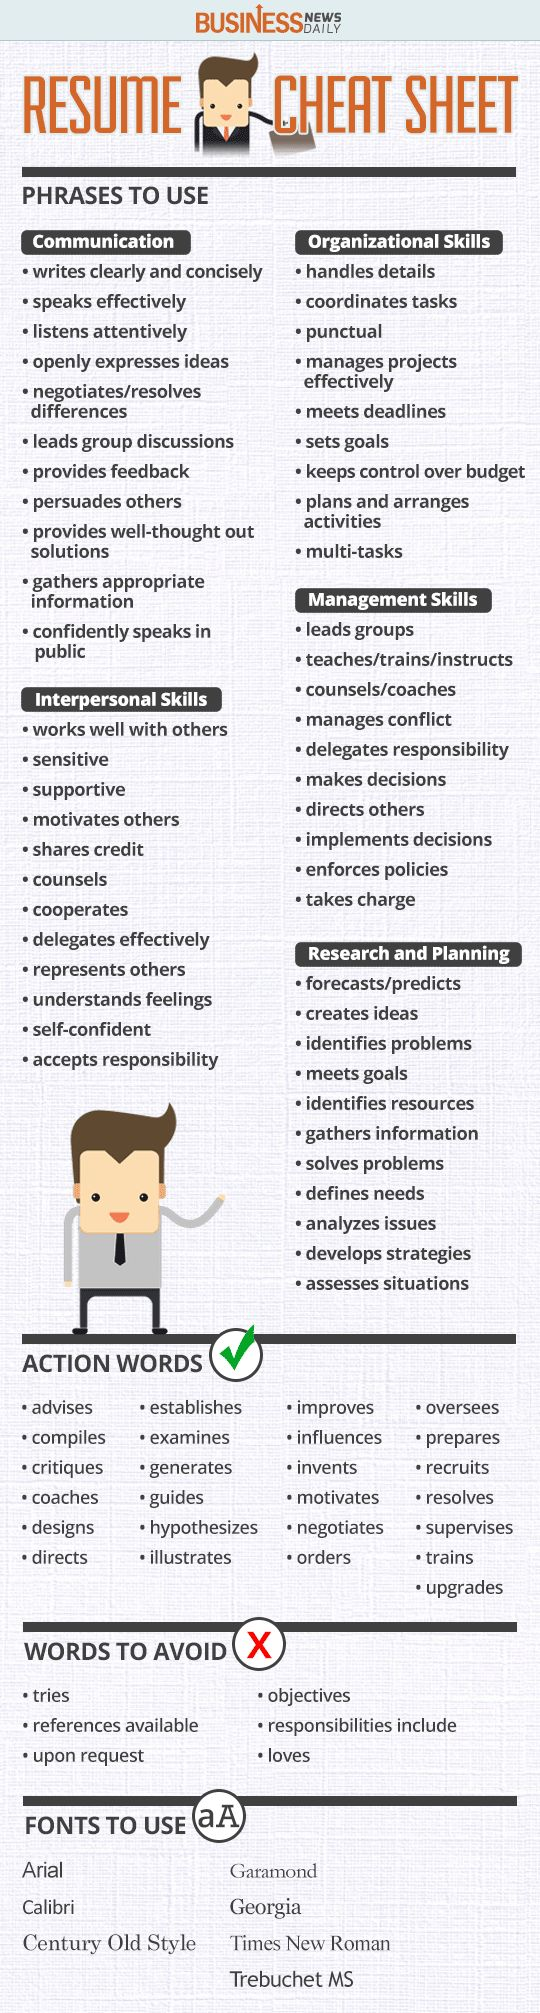 Opposenewapstandardsus  Ravishing  Ideas About Resume On Pinterest  Cv Format Resume Cv And  With Heavenly Resume Cheat Sheet Infographic Andrews Almost Done With A Complete Unit On Employment Which With Comely What Is The Best Font To Use For A Resume Also Case Manager Resume Objective In Addition Medical Receptionist Resume Sample And Successful Resume Templates As Well As Medical Office Receptionist Resume Additionally Microsoft Resume Templates  From Pinterestcom With Opposenewapstandardsus  Heavenly  Ideas About Resume On Pinterest  Cv Format Resume Cv And  With Comely Resume Cheat Sheet Infographic Andrews Almost Done With A Complete Unit On Employment Which And Ravishing What Is The Best Font To Use For A Resume Also Case Manager Resume Objective In Addition Medical Receptionist Resume Sample From Pinterestcom